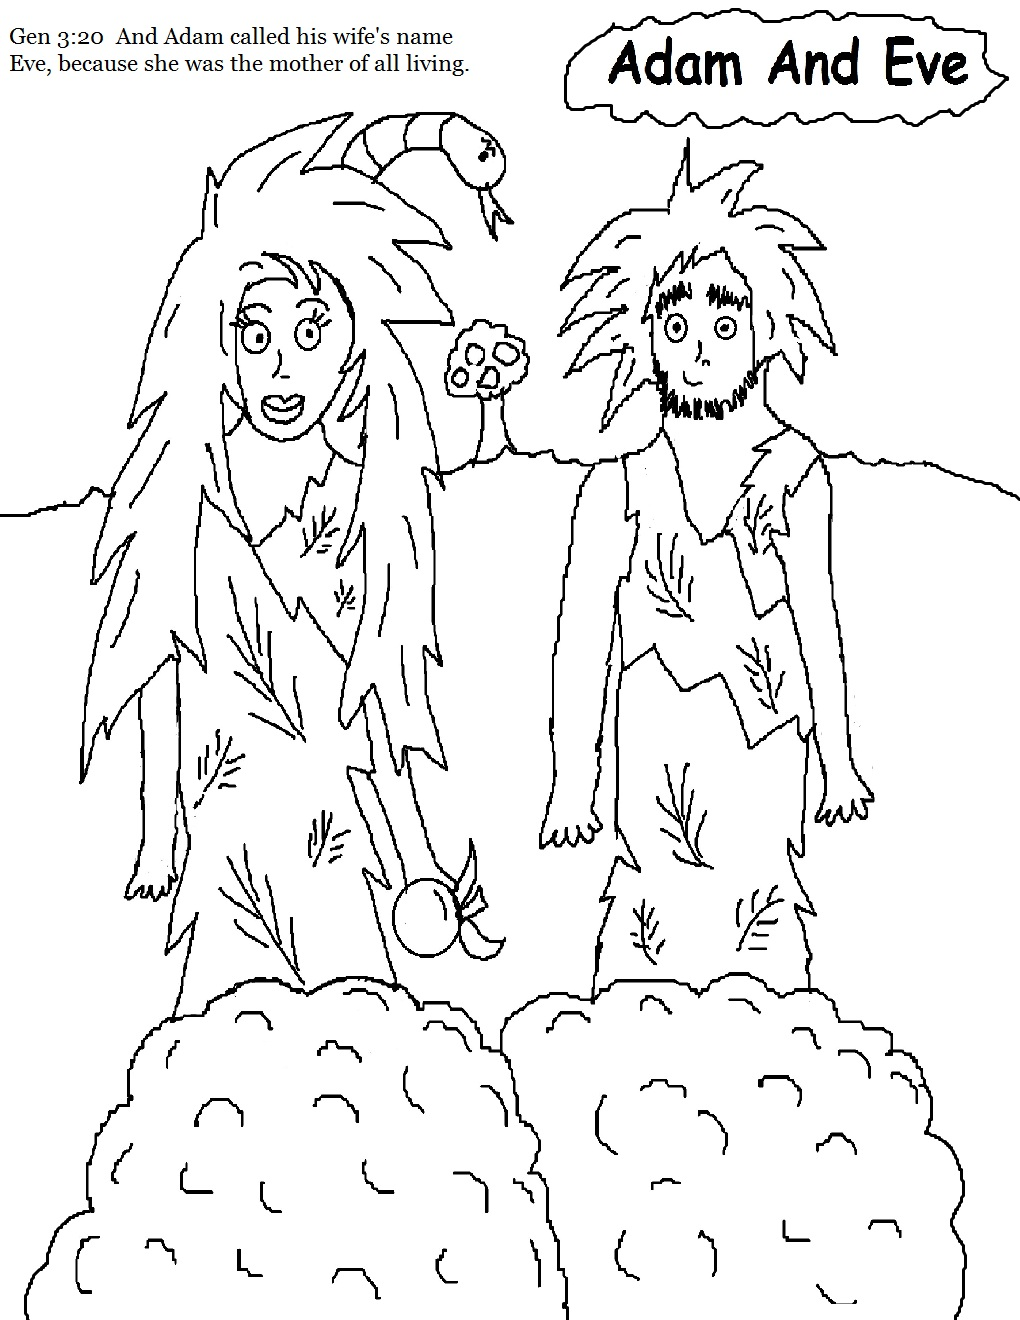 Adam And Eve Coloring Pages Enchanting Adam And Eve Coloring Pages Inspiration